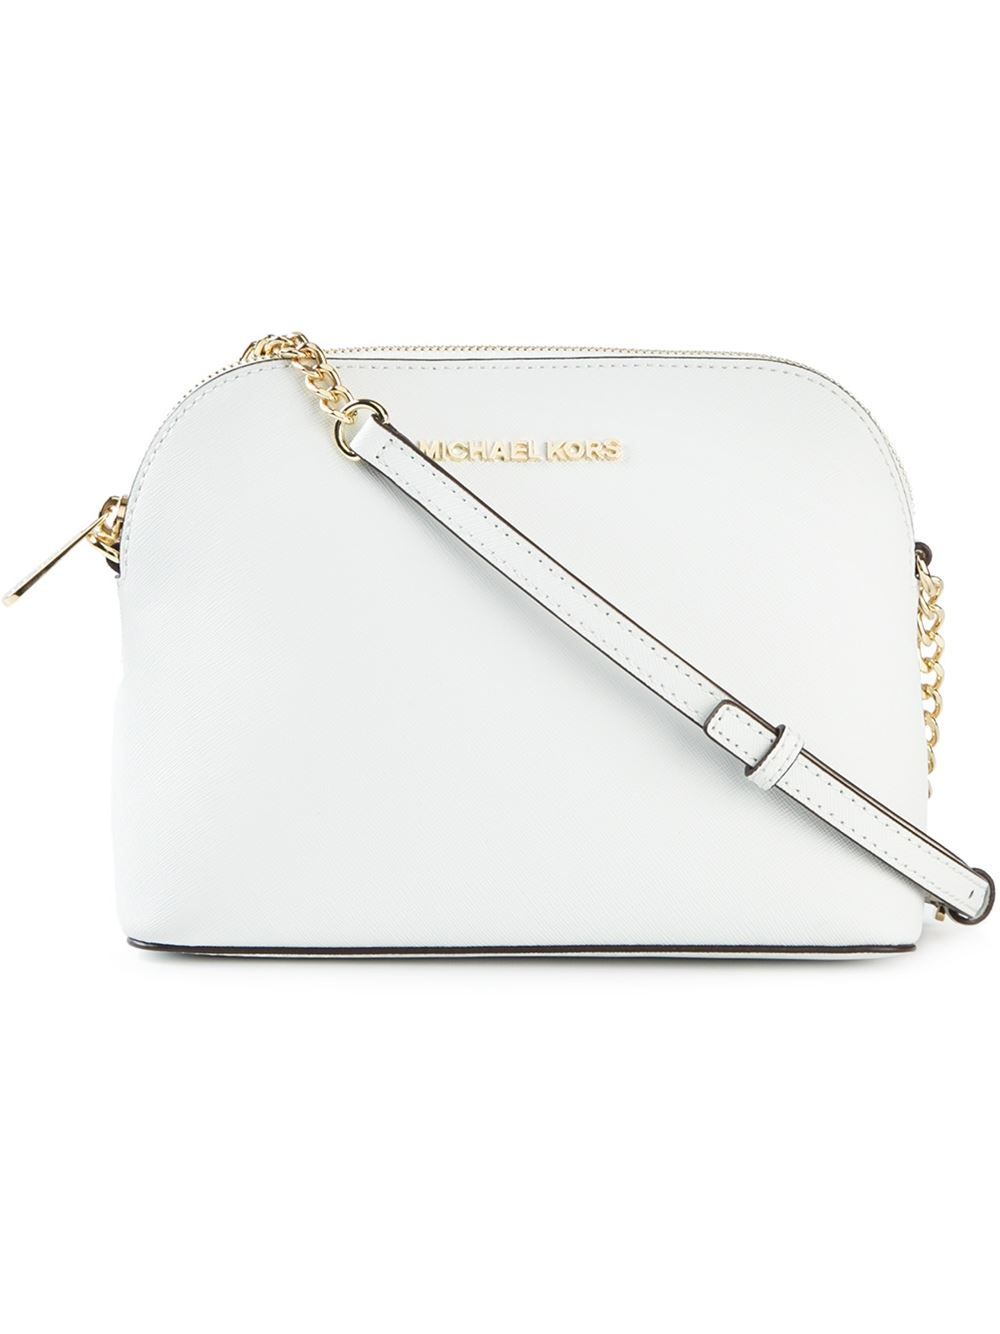 409a64569a94 MICHAEL Michael Kors 'Cindy' Crossbody Bag in White - Lyst